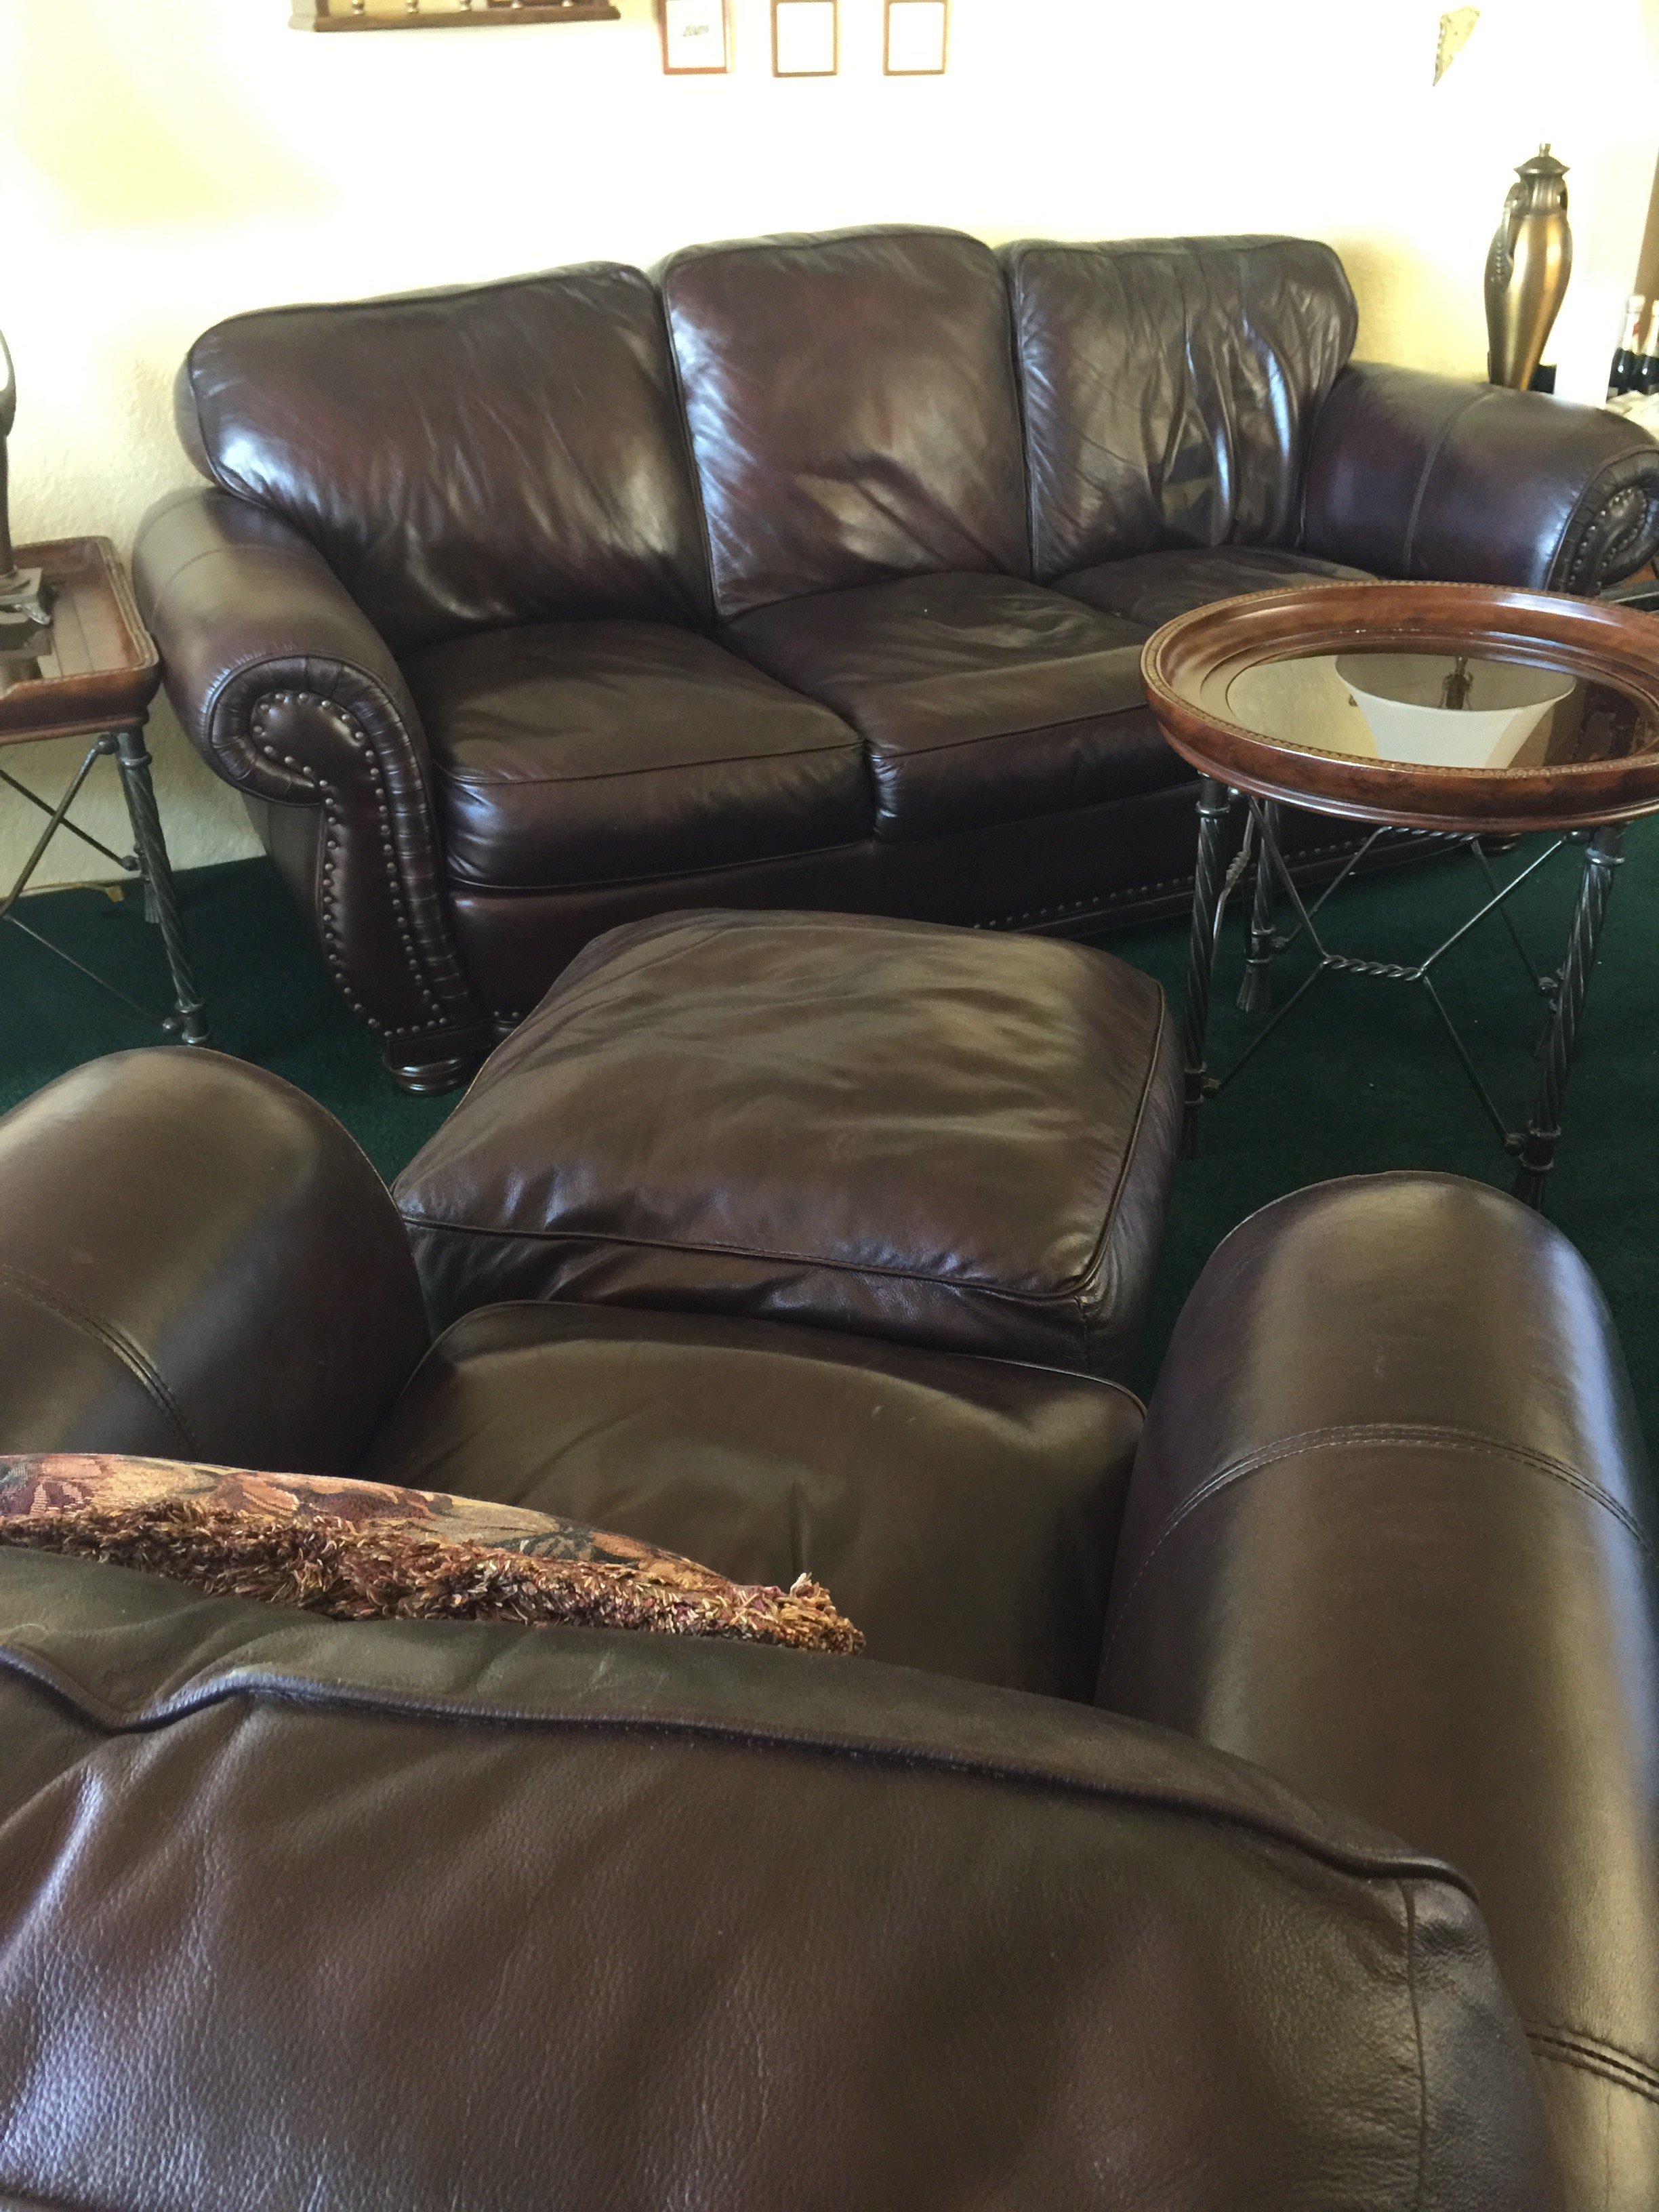 Sofa For A Bedroom Large Three Day Estate Sale - Emerald Hills - My Edmonds News